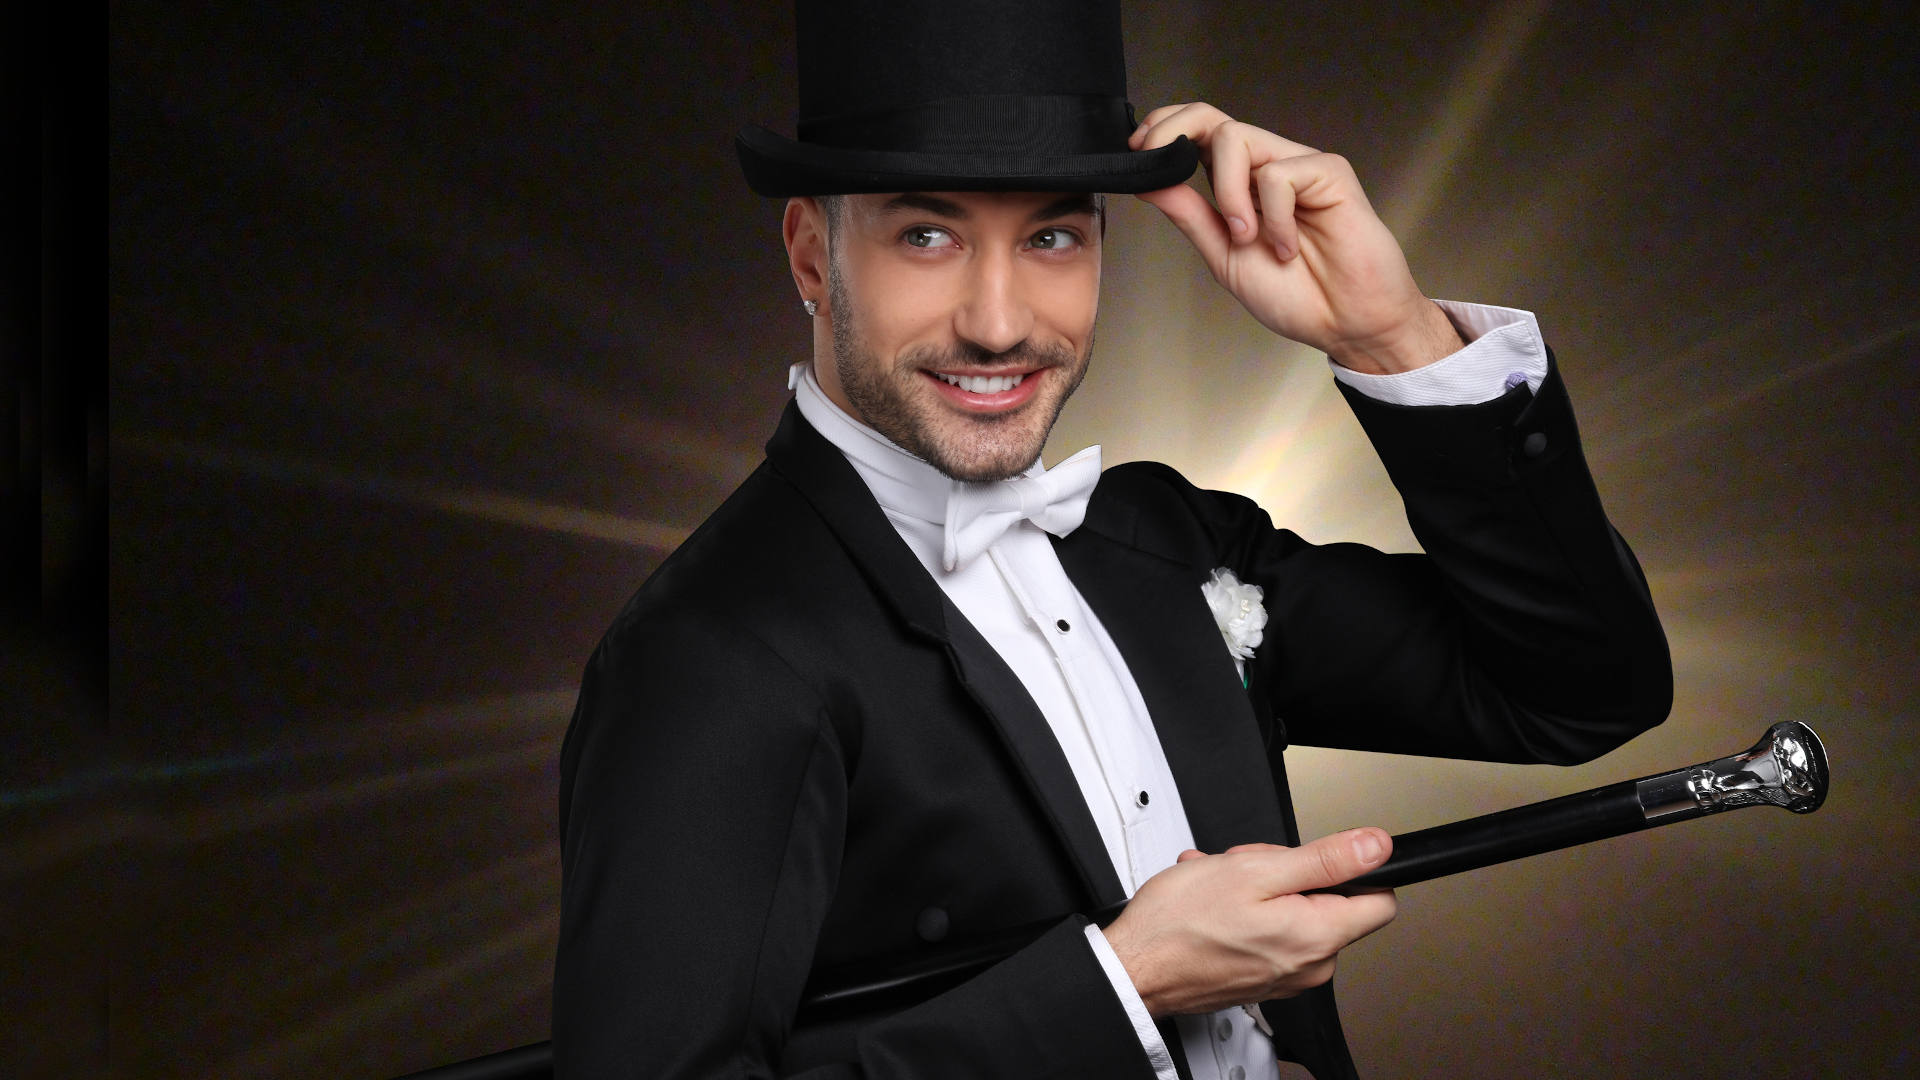 Giovanni Pernice portrait from 'This is Me' production